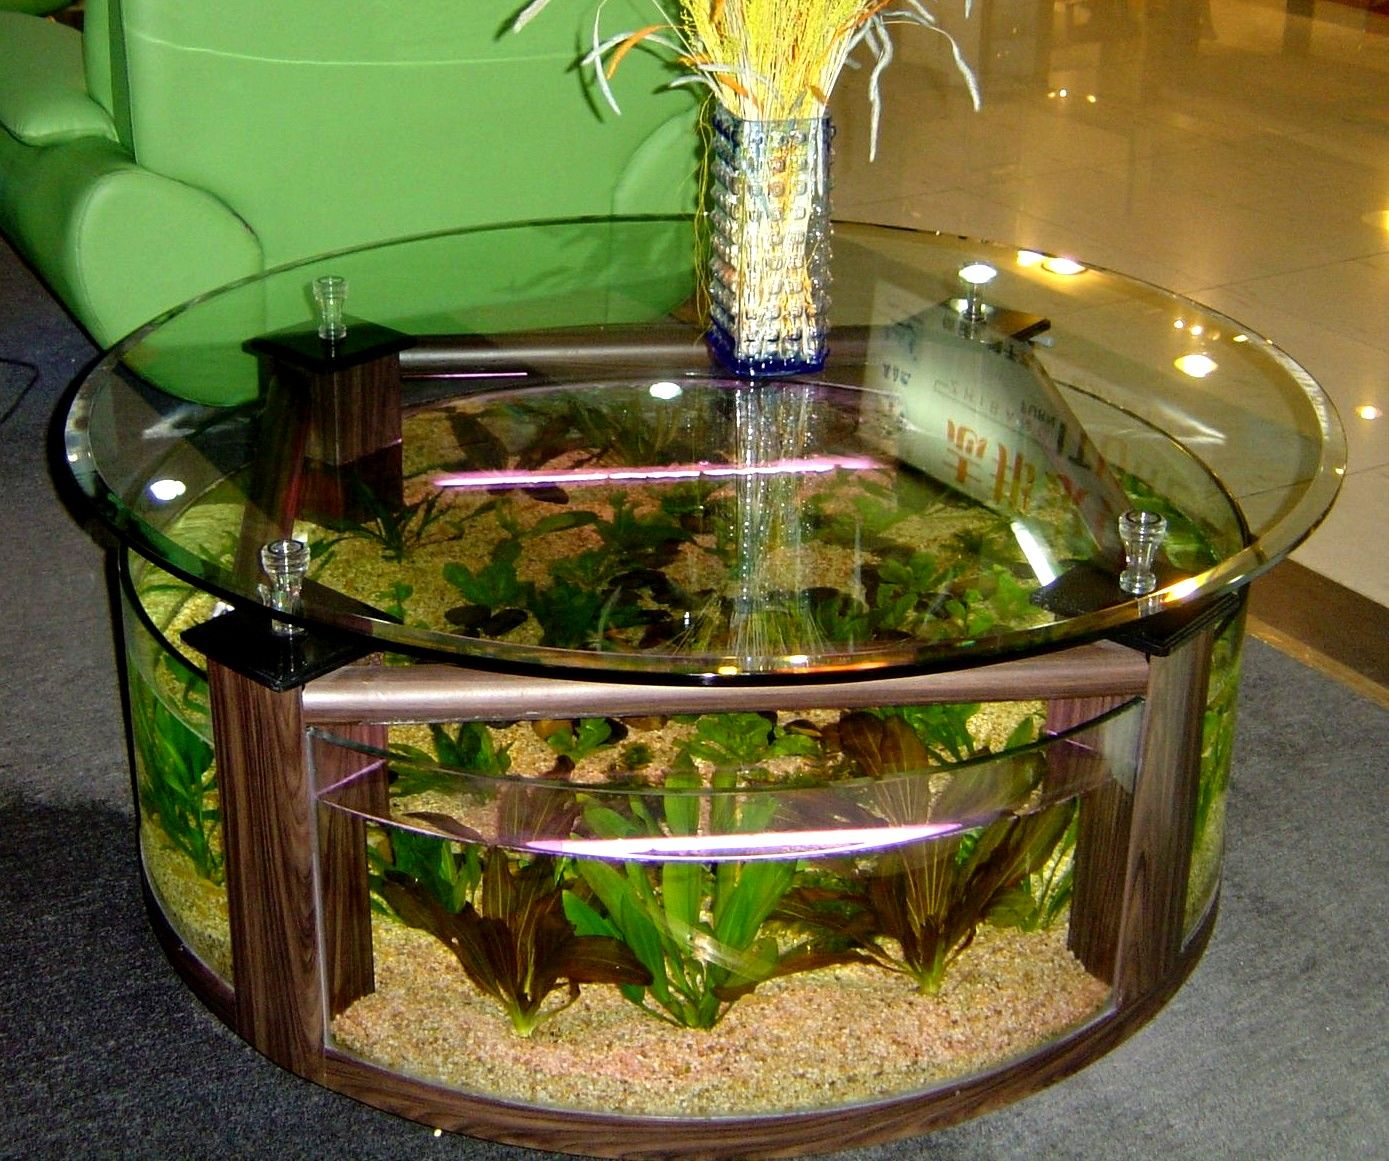 Fish for aquarium at home - Home Coffee Table Aquarium Design Ideas2 Aquarium Design Ideas Aquarium